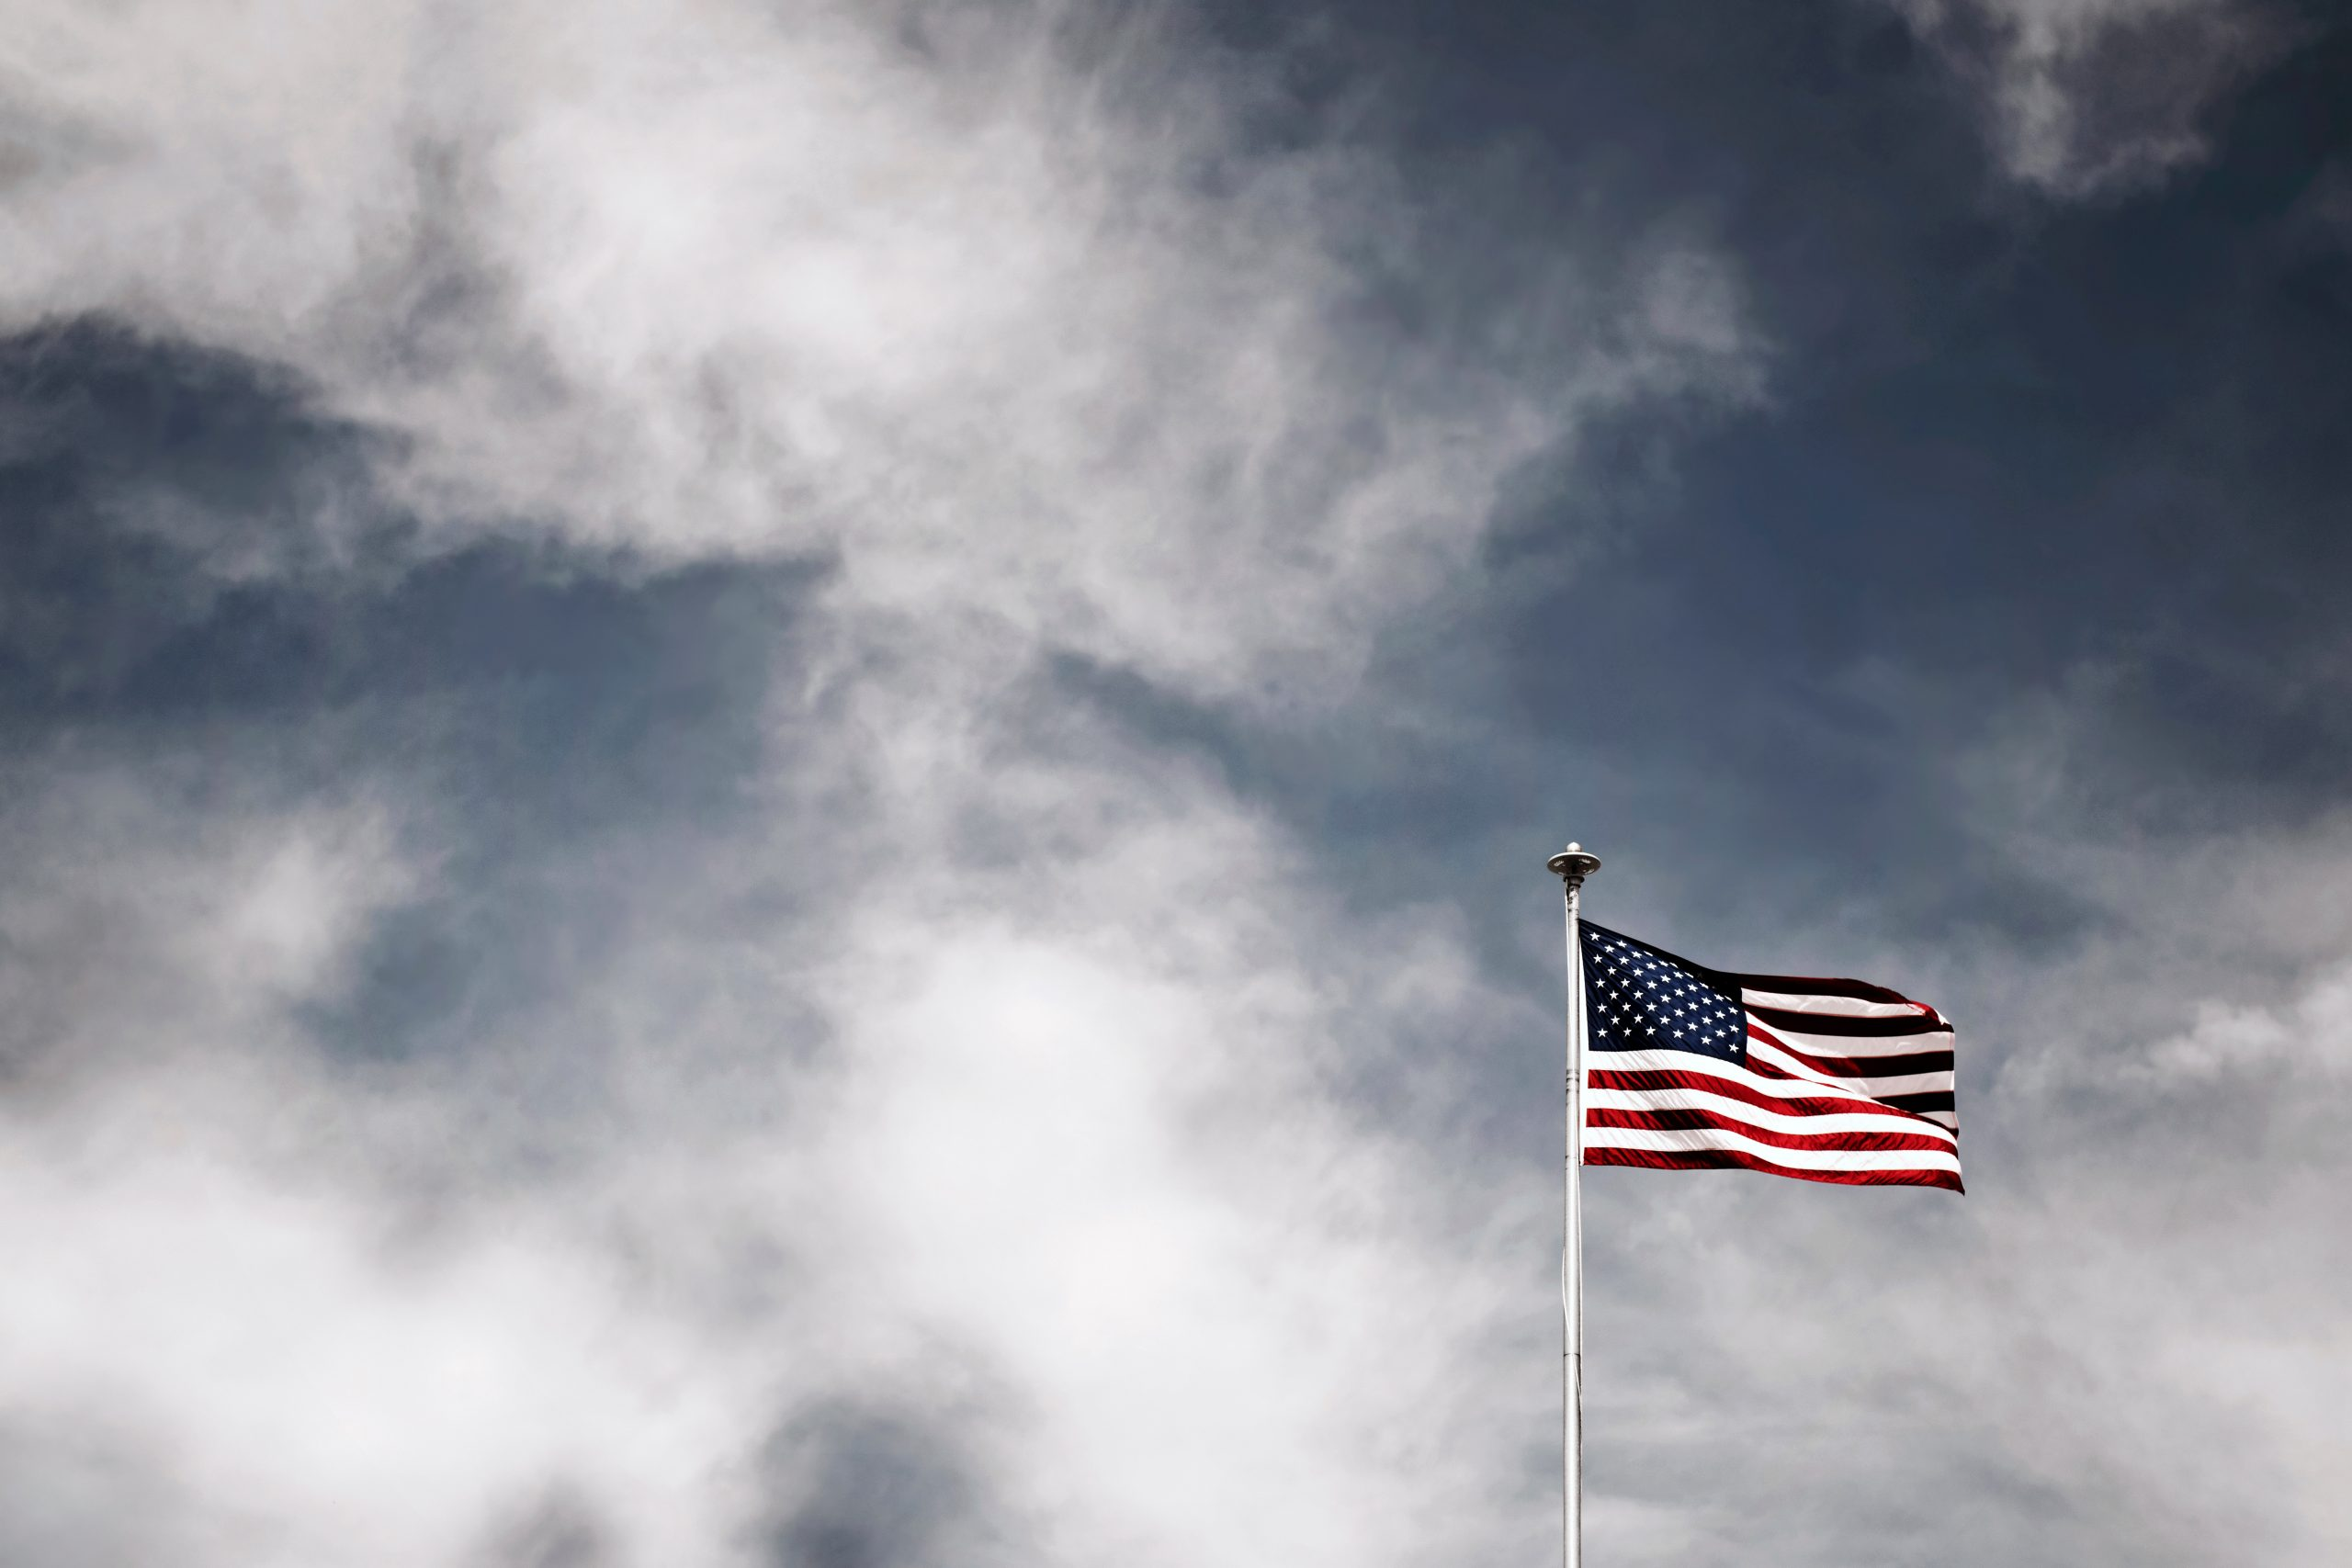 American flag waving in the wind 2